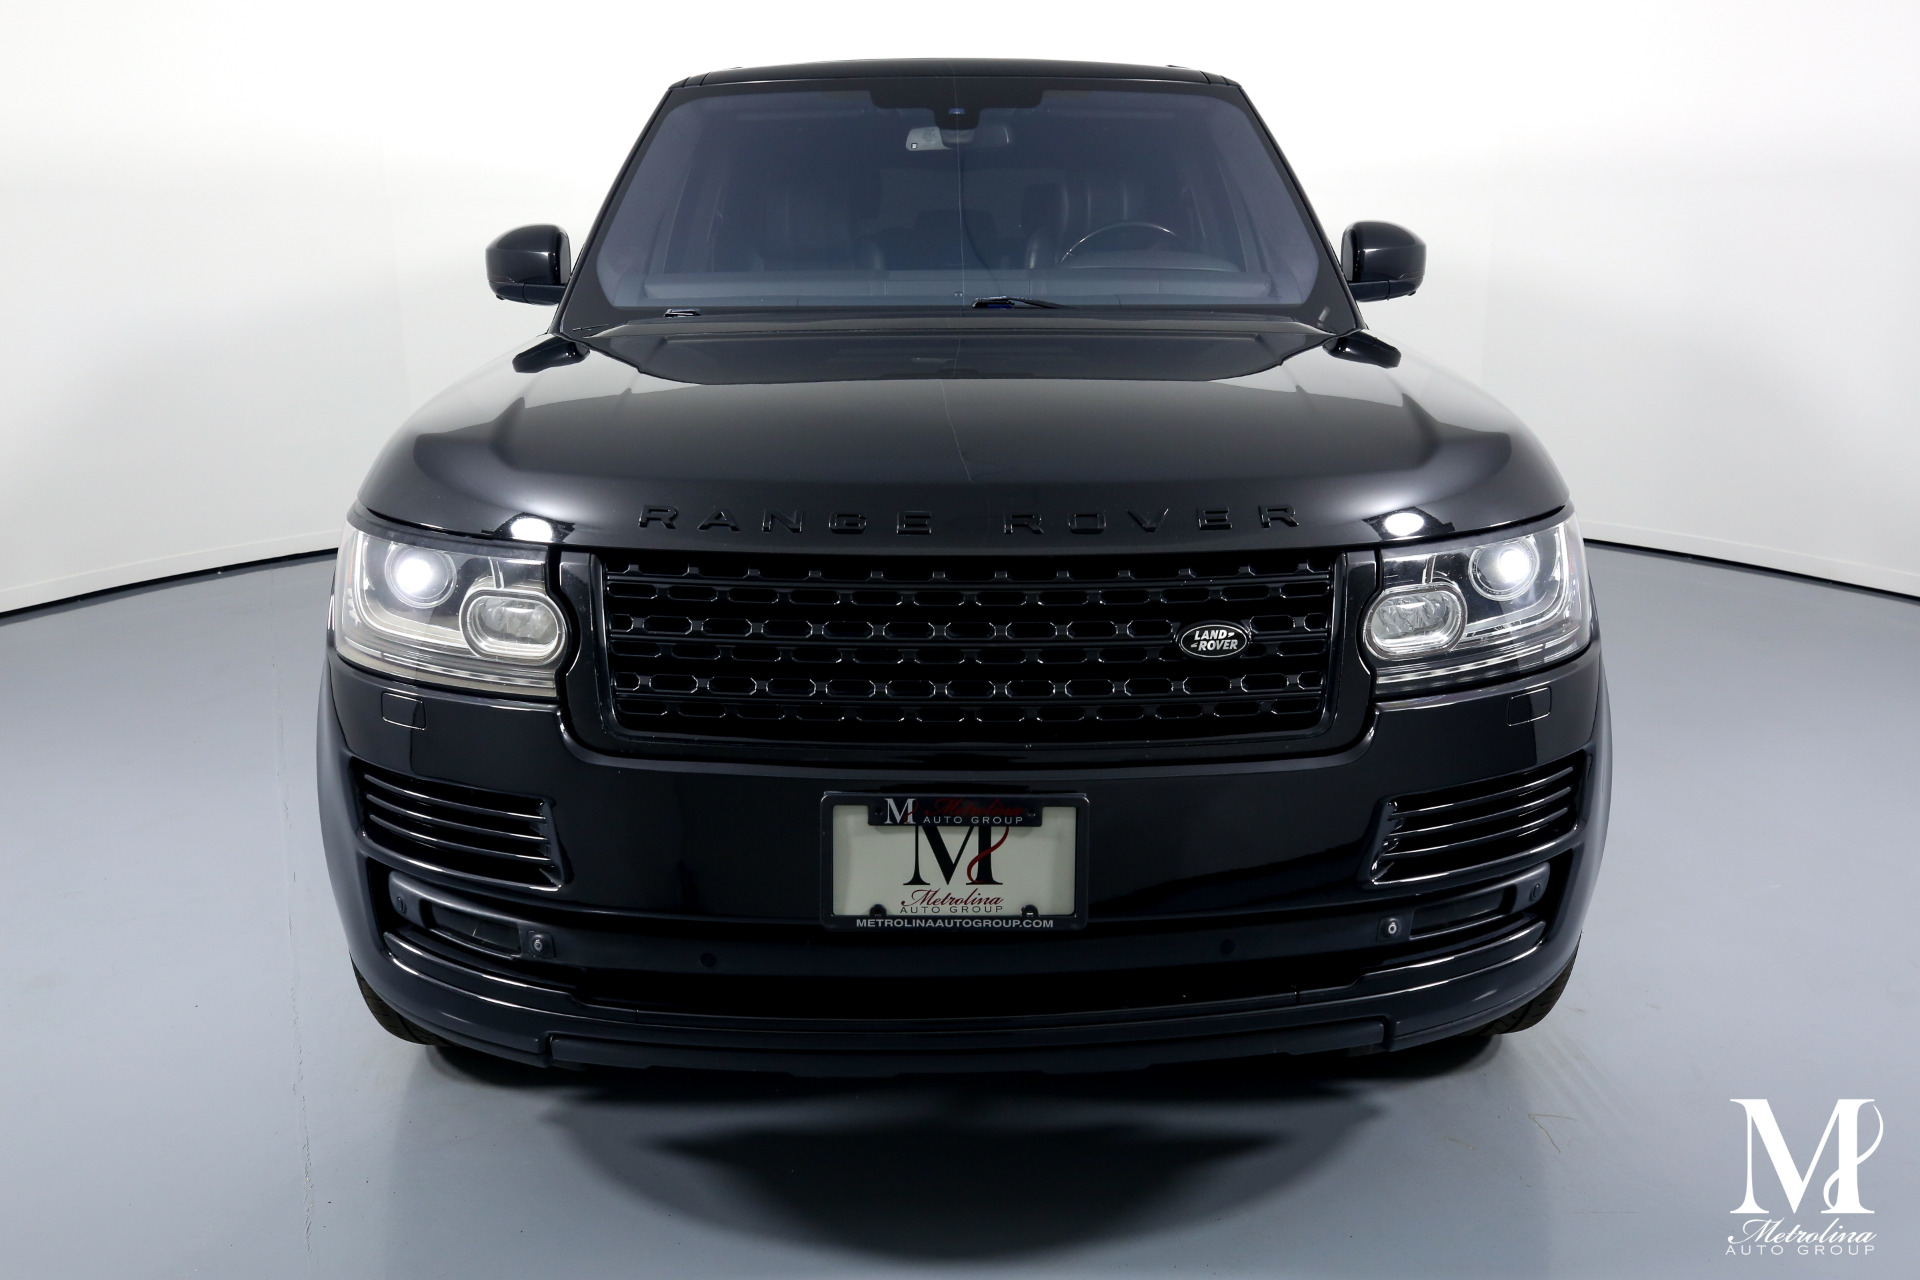 Used 2015 Land Rover Range Rover Autobiography LWB for sale $49,996 at Metrolina Auto Group in Charlotte NC 28217 - 3